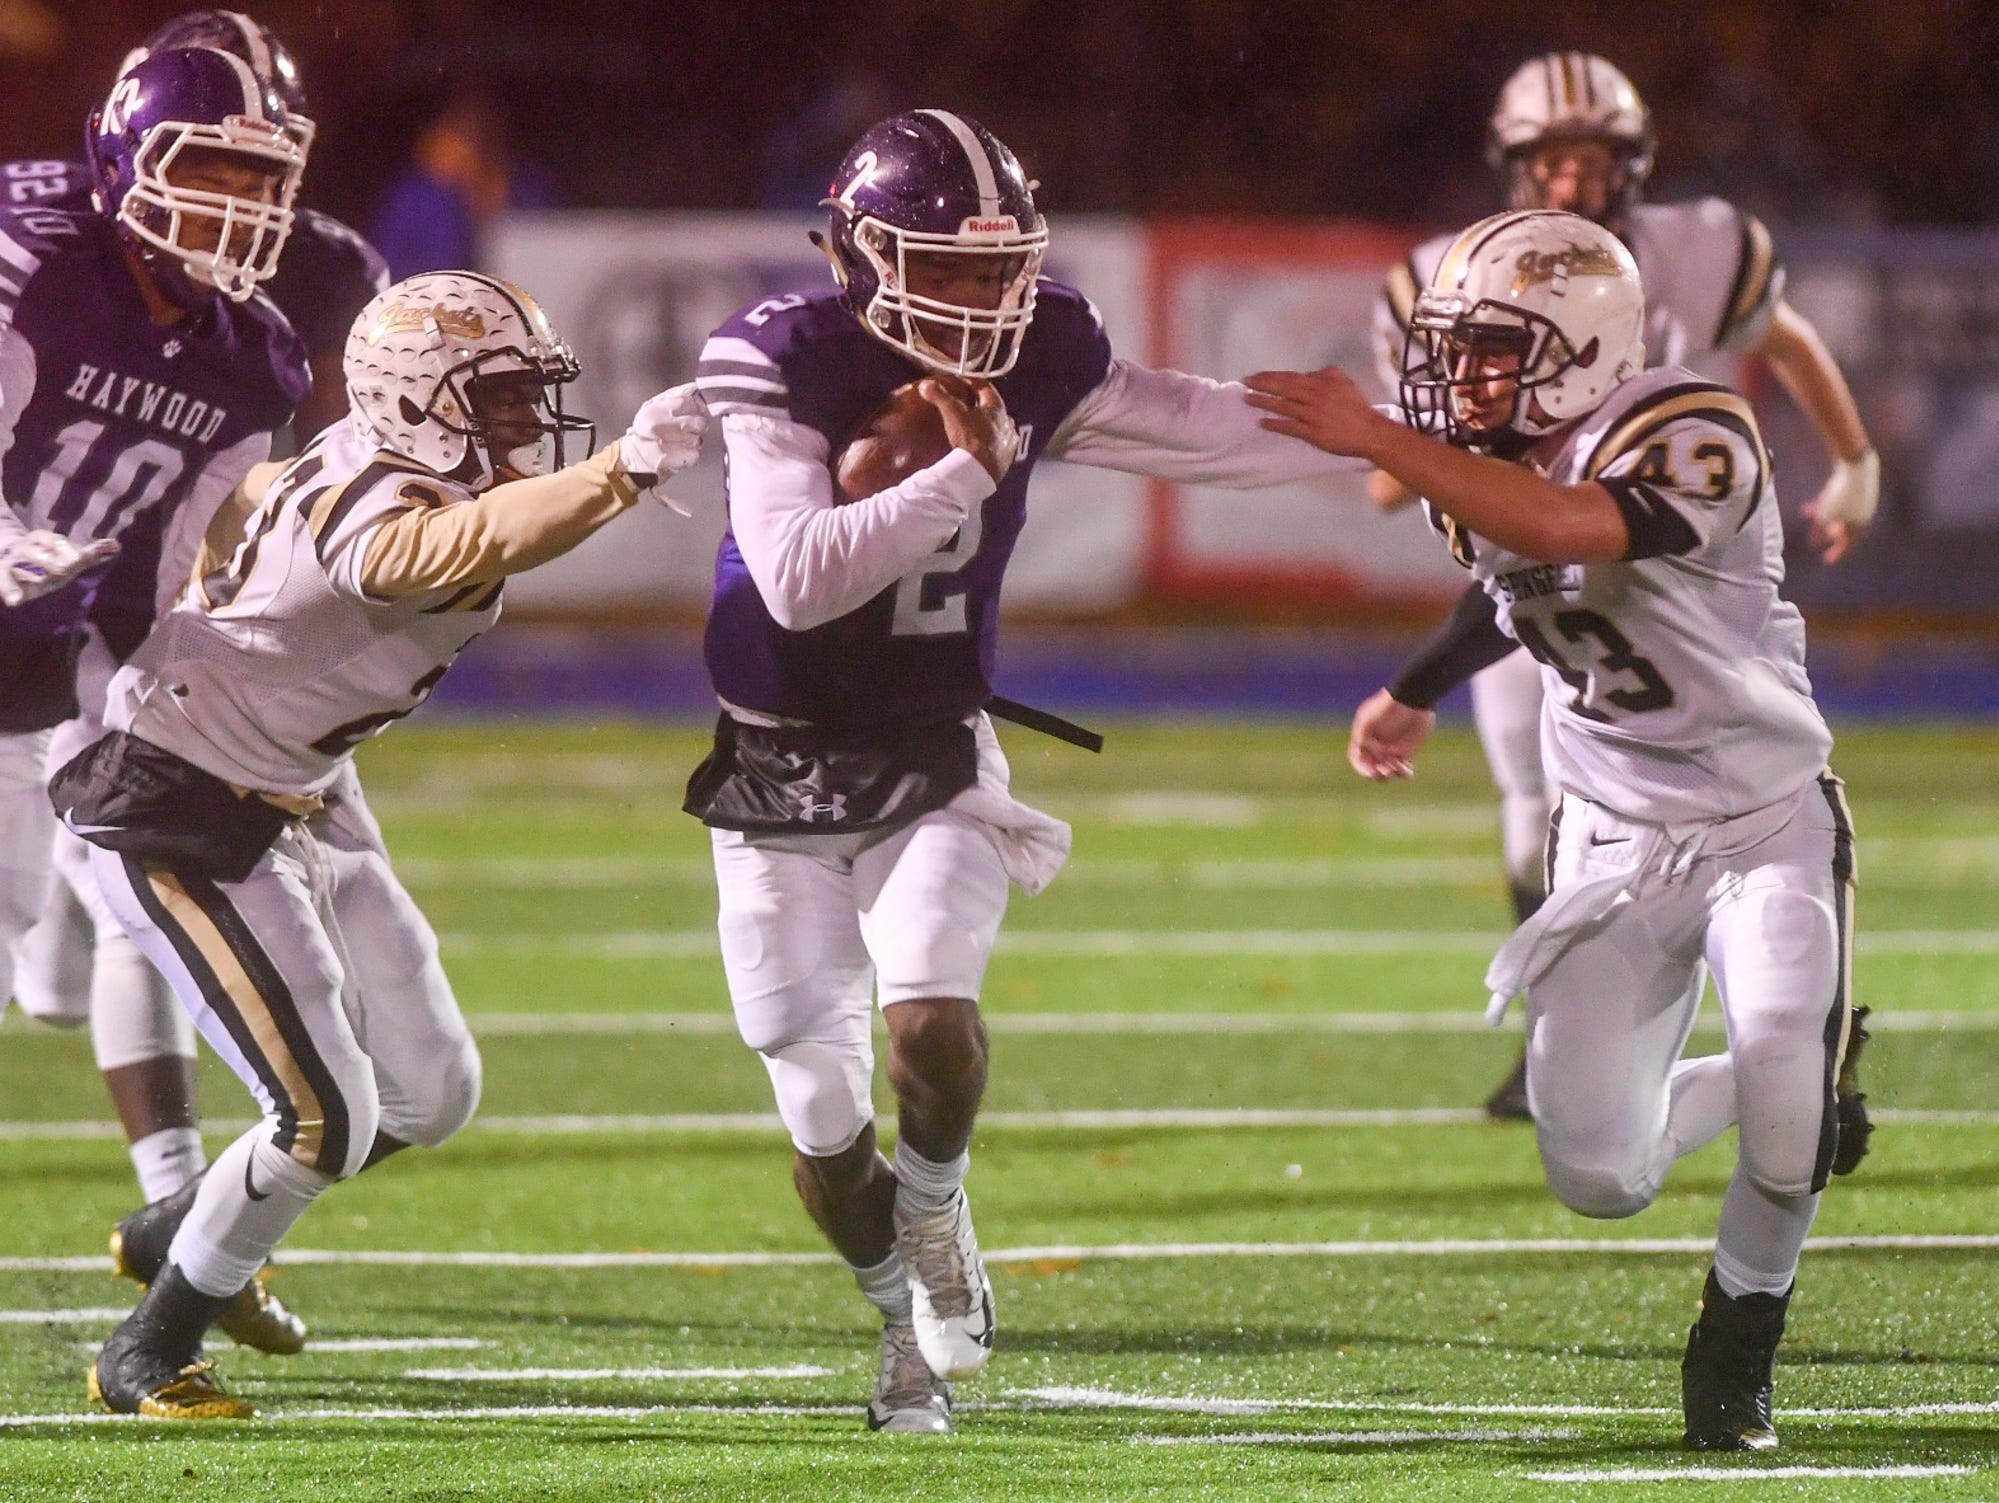 Springfield defenders attempt to tackle Haywood's Deyondrius Hines during their Class 4A semifinal game, Friday, November 23. Haywood lead at the half, 14-7.